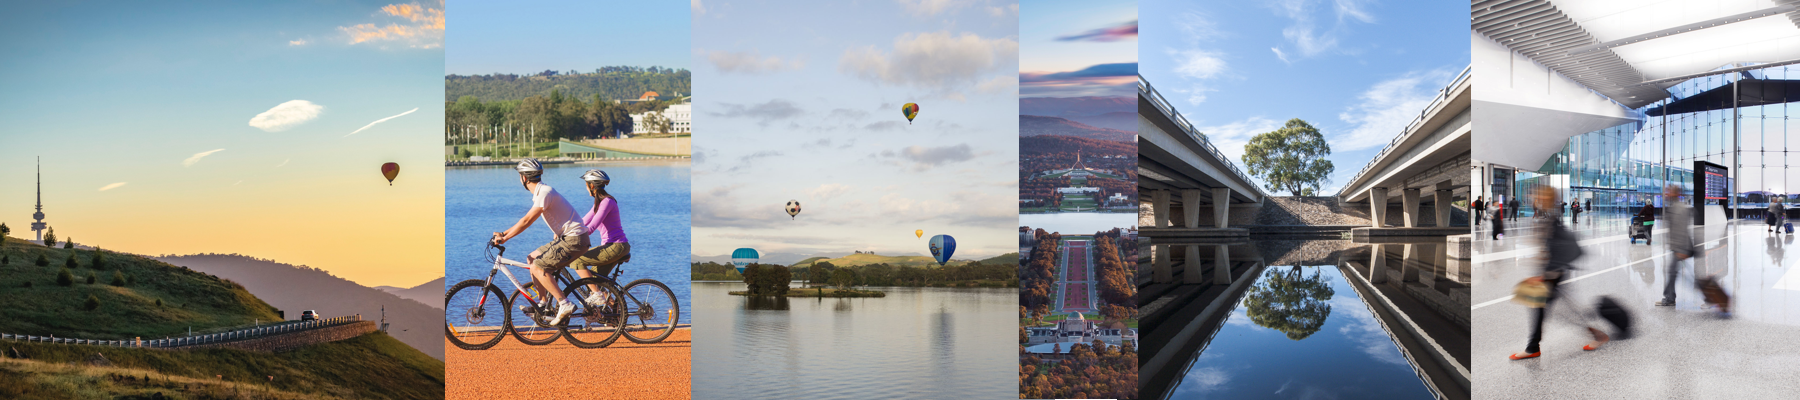 Images of Canberra